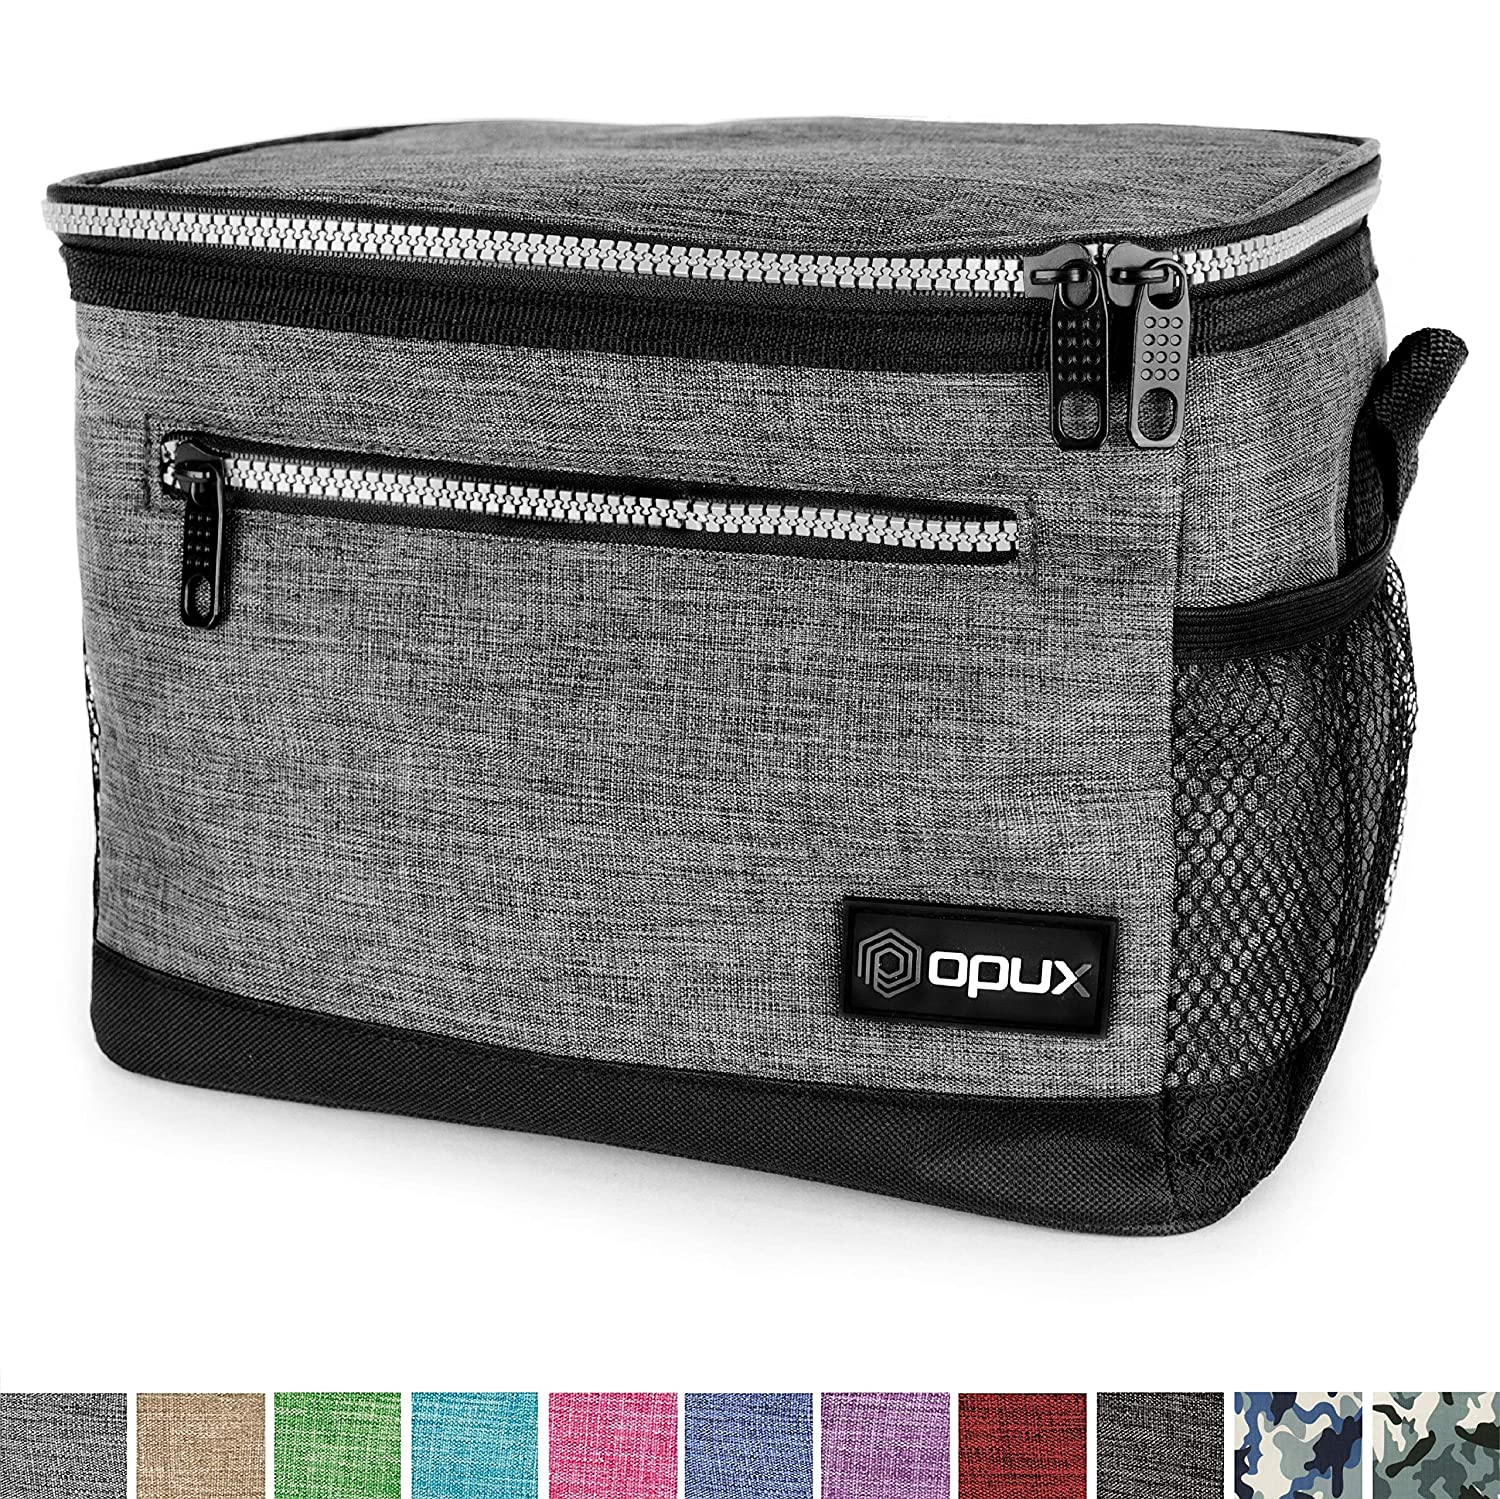 OPUX Premium Lunch Box, Insulated Lunch Bag for Men Women Adult   Durable School Lunch Pail for Boys, Girls, Kids   Soft Leakproof Medium Lunch Cooler Tote for Work Office   Fits 8 Cans (Heather Grey)